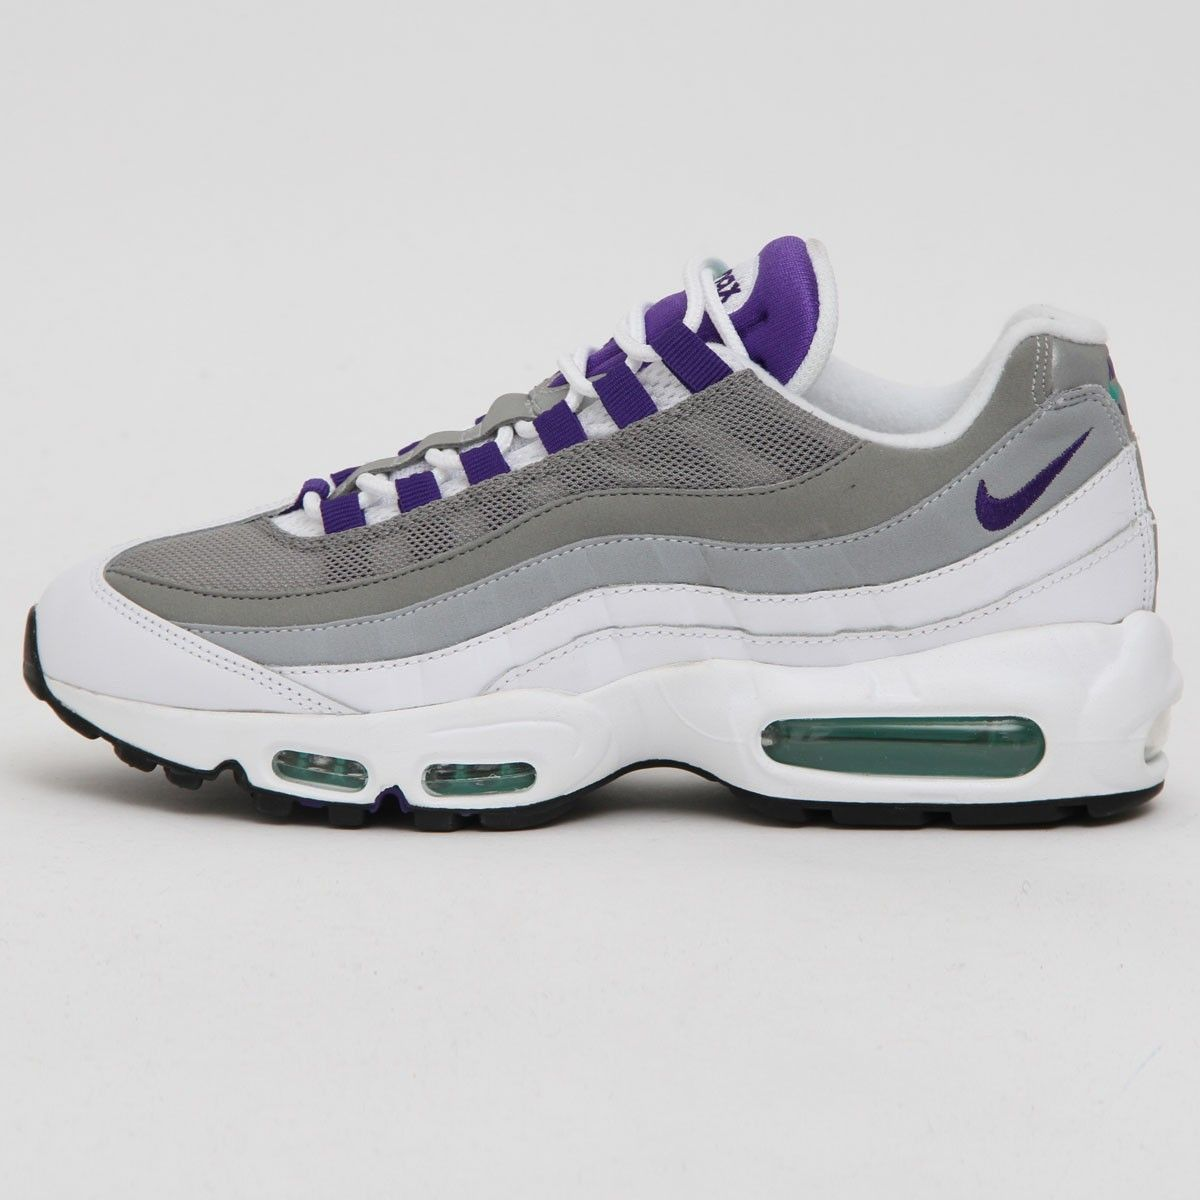 wholesale dealer 0a4bc e68f8 Nike Air Max 95 OG   Grape . 2015. 554970-151.